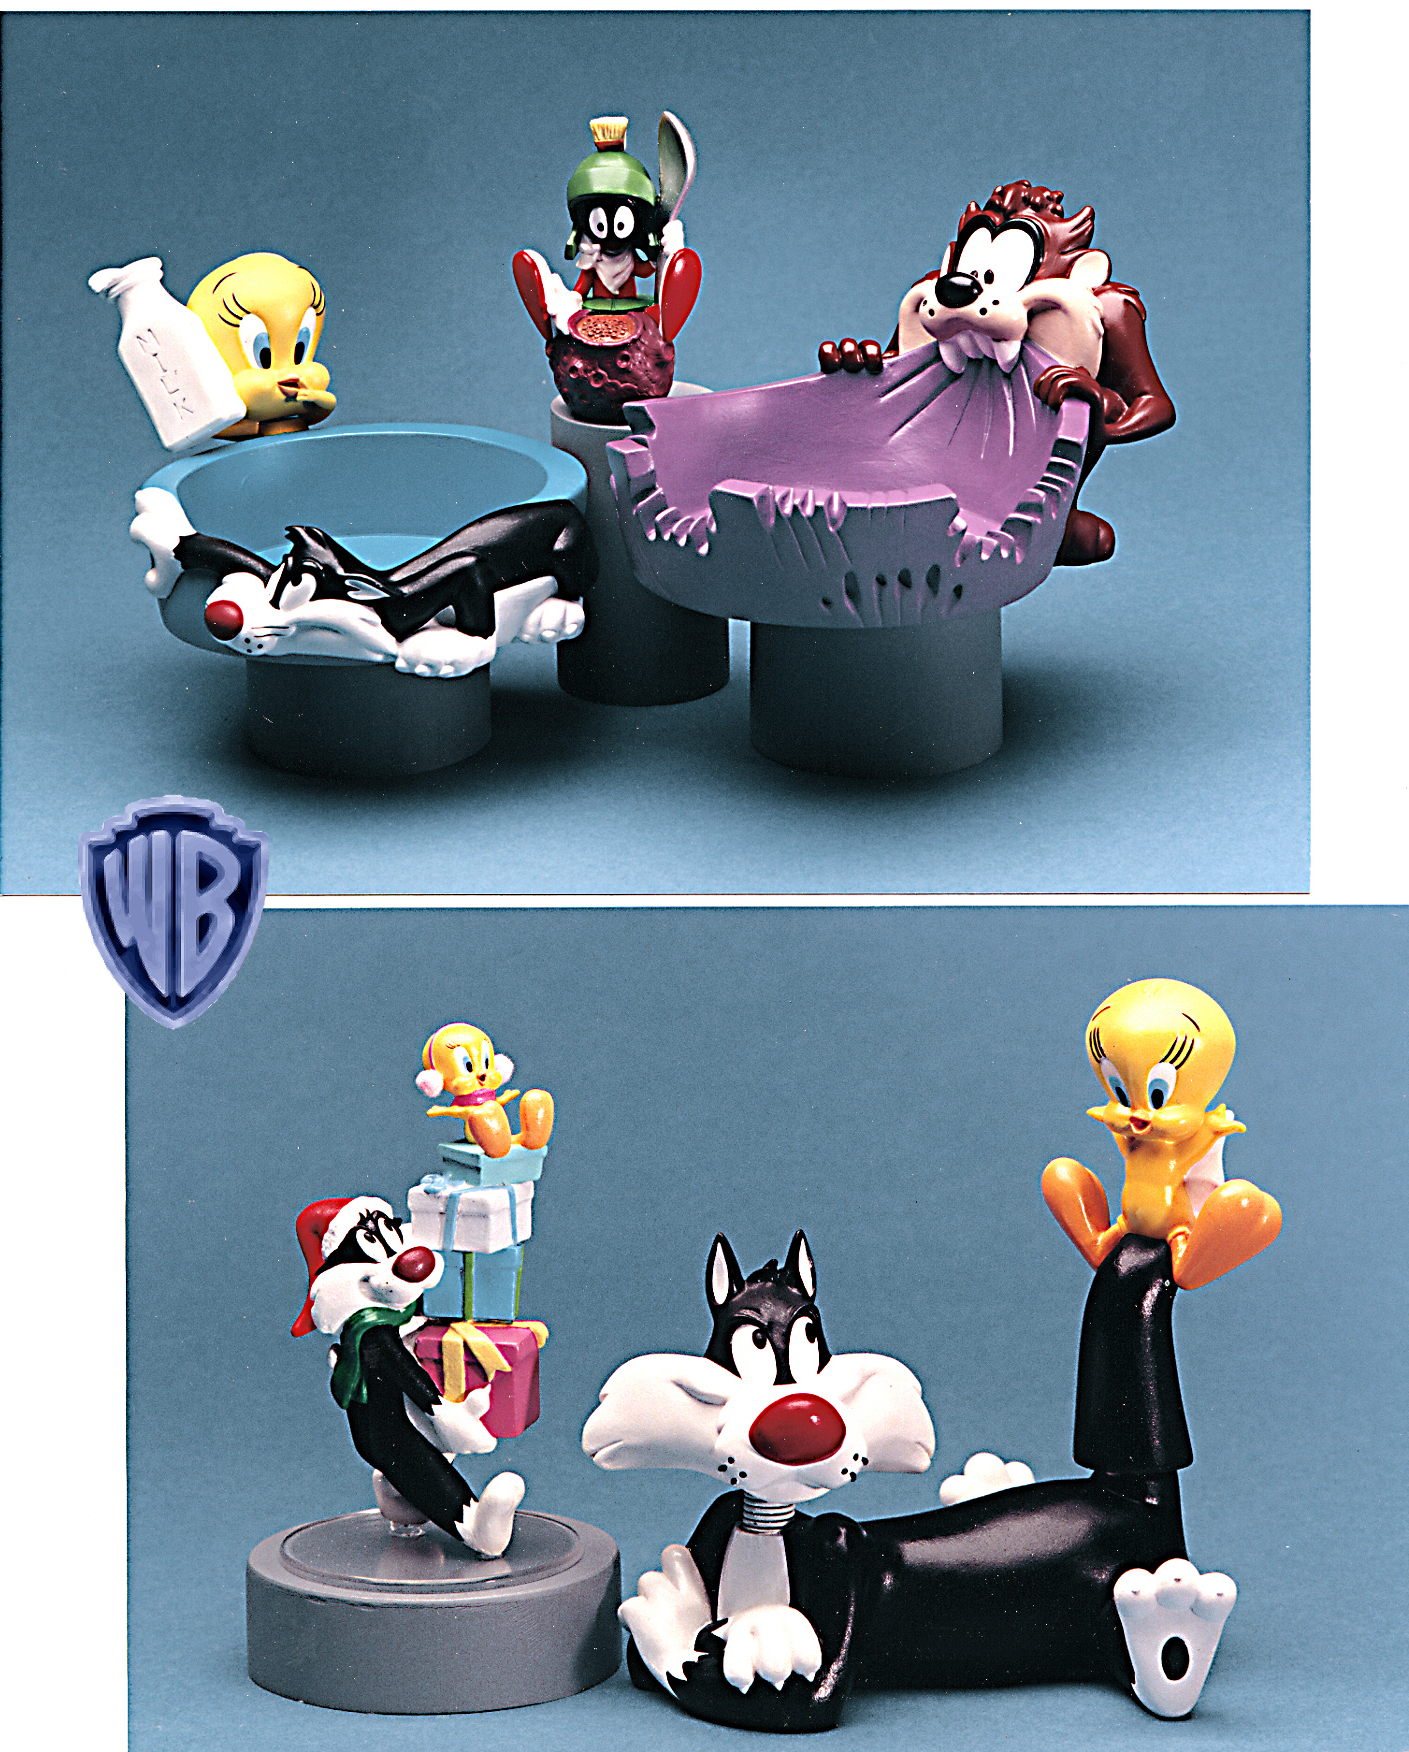 Warner Bros characters, Tweety, Slyvester, Taz various projects